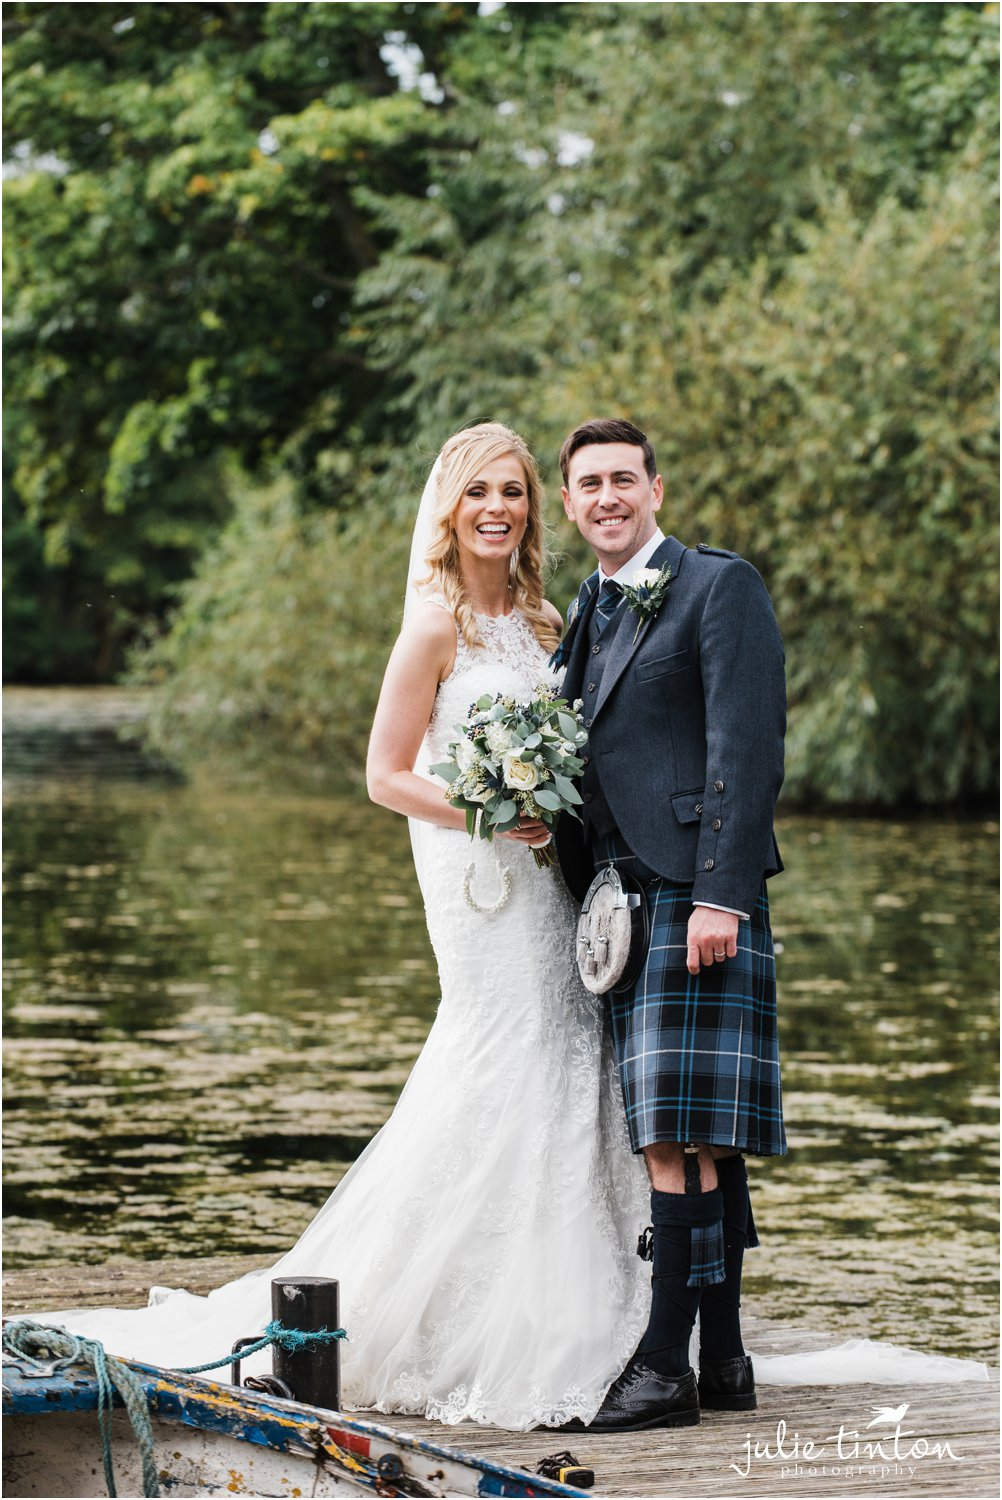 Portrait of bride and groom at Broxmouth Park